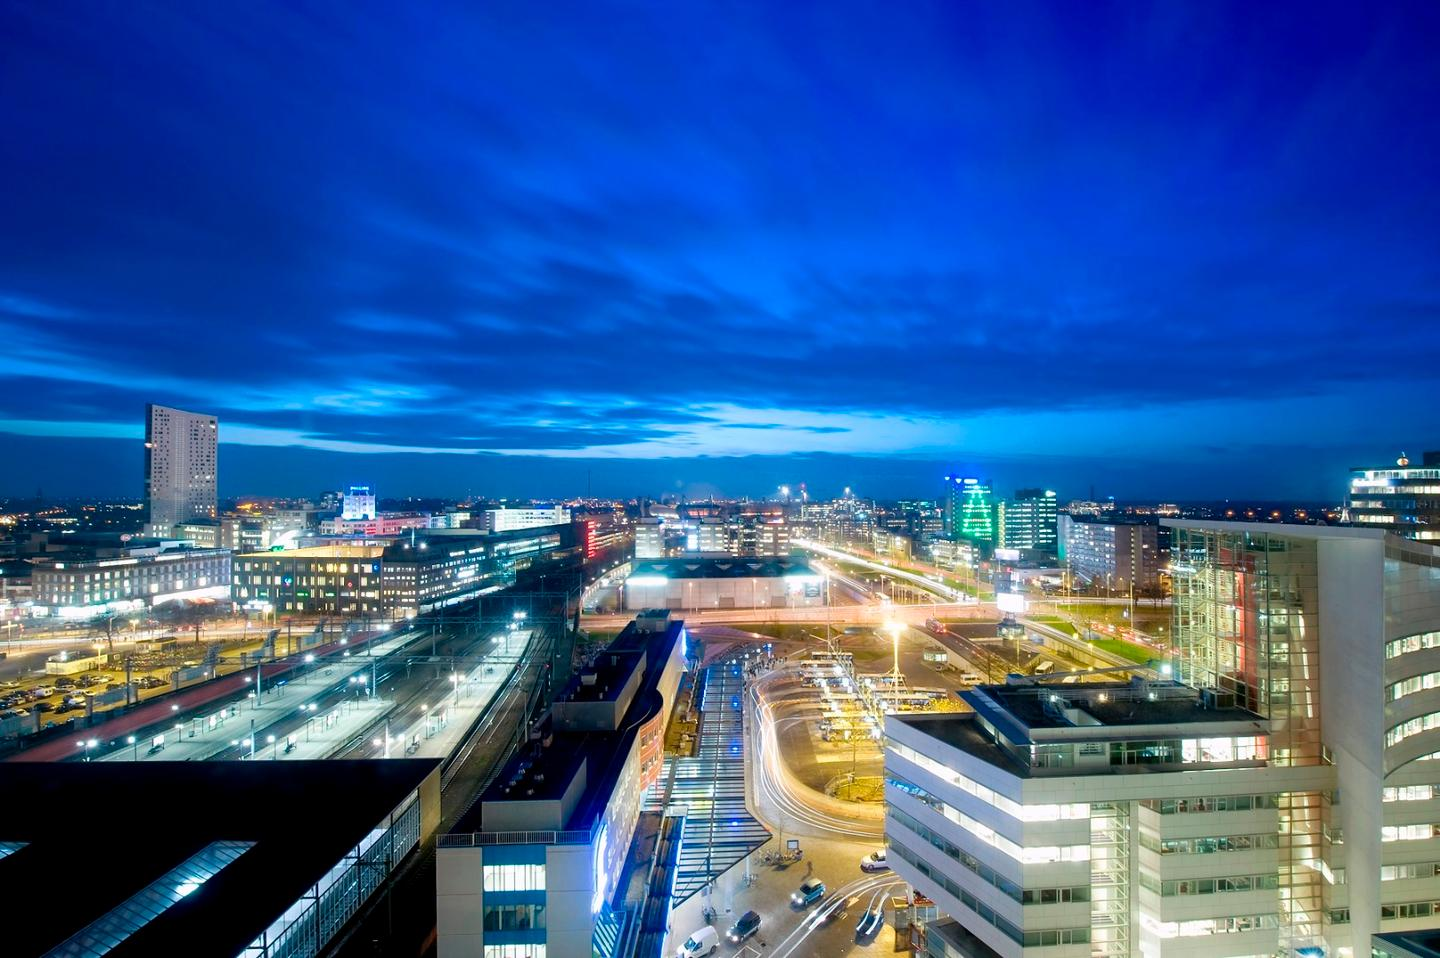 Eindhoven's smart street lighting could guide emergency services to incidents, use sensors to adapt lighting to weather conditions or provide lighting on demand when people are using the streets at night